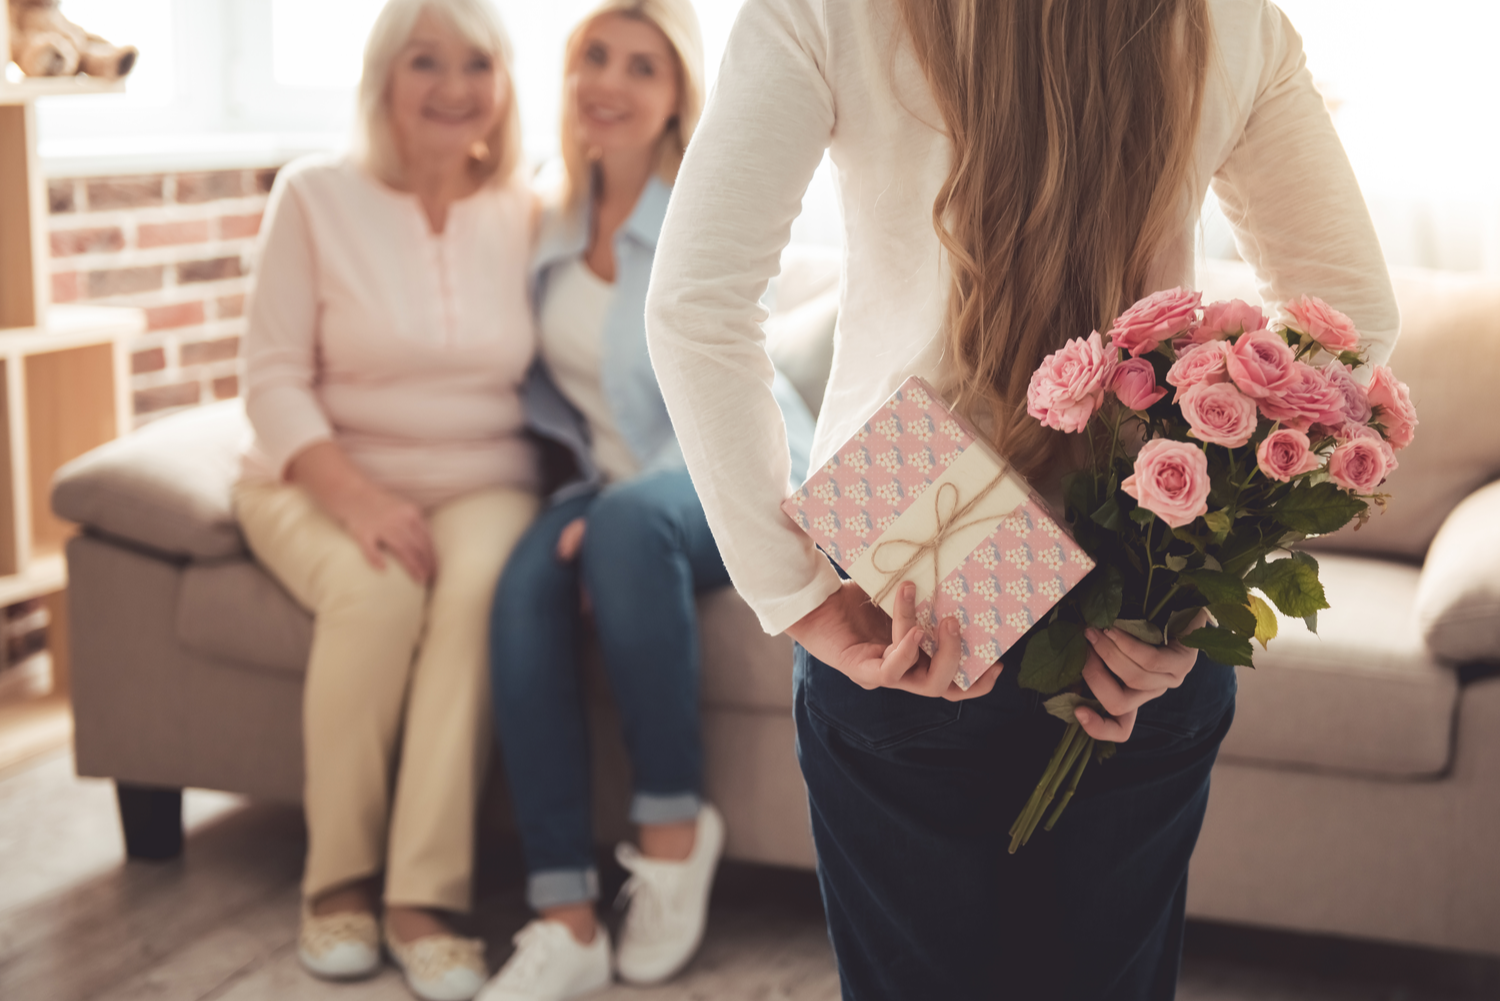 Mother's Day 2021 Competition: Win Flowers for Your Mum